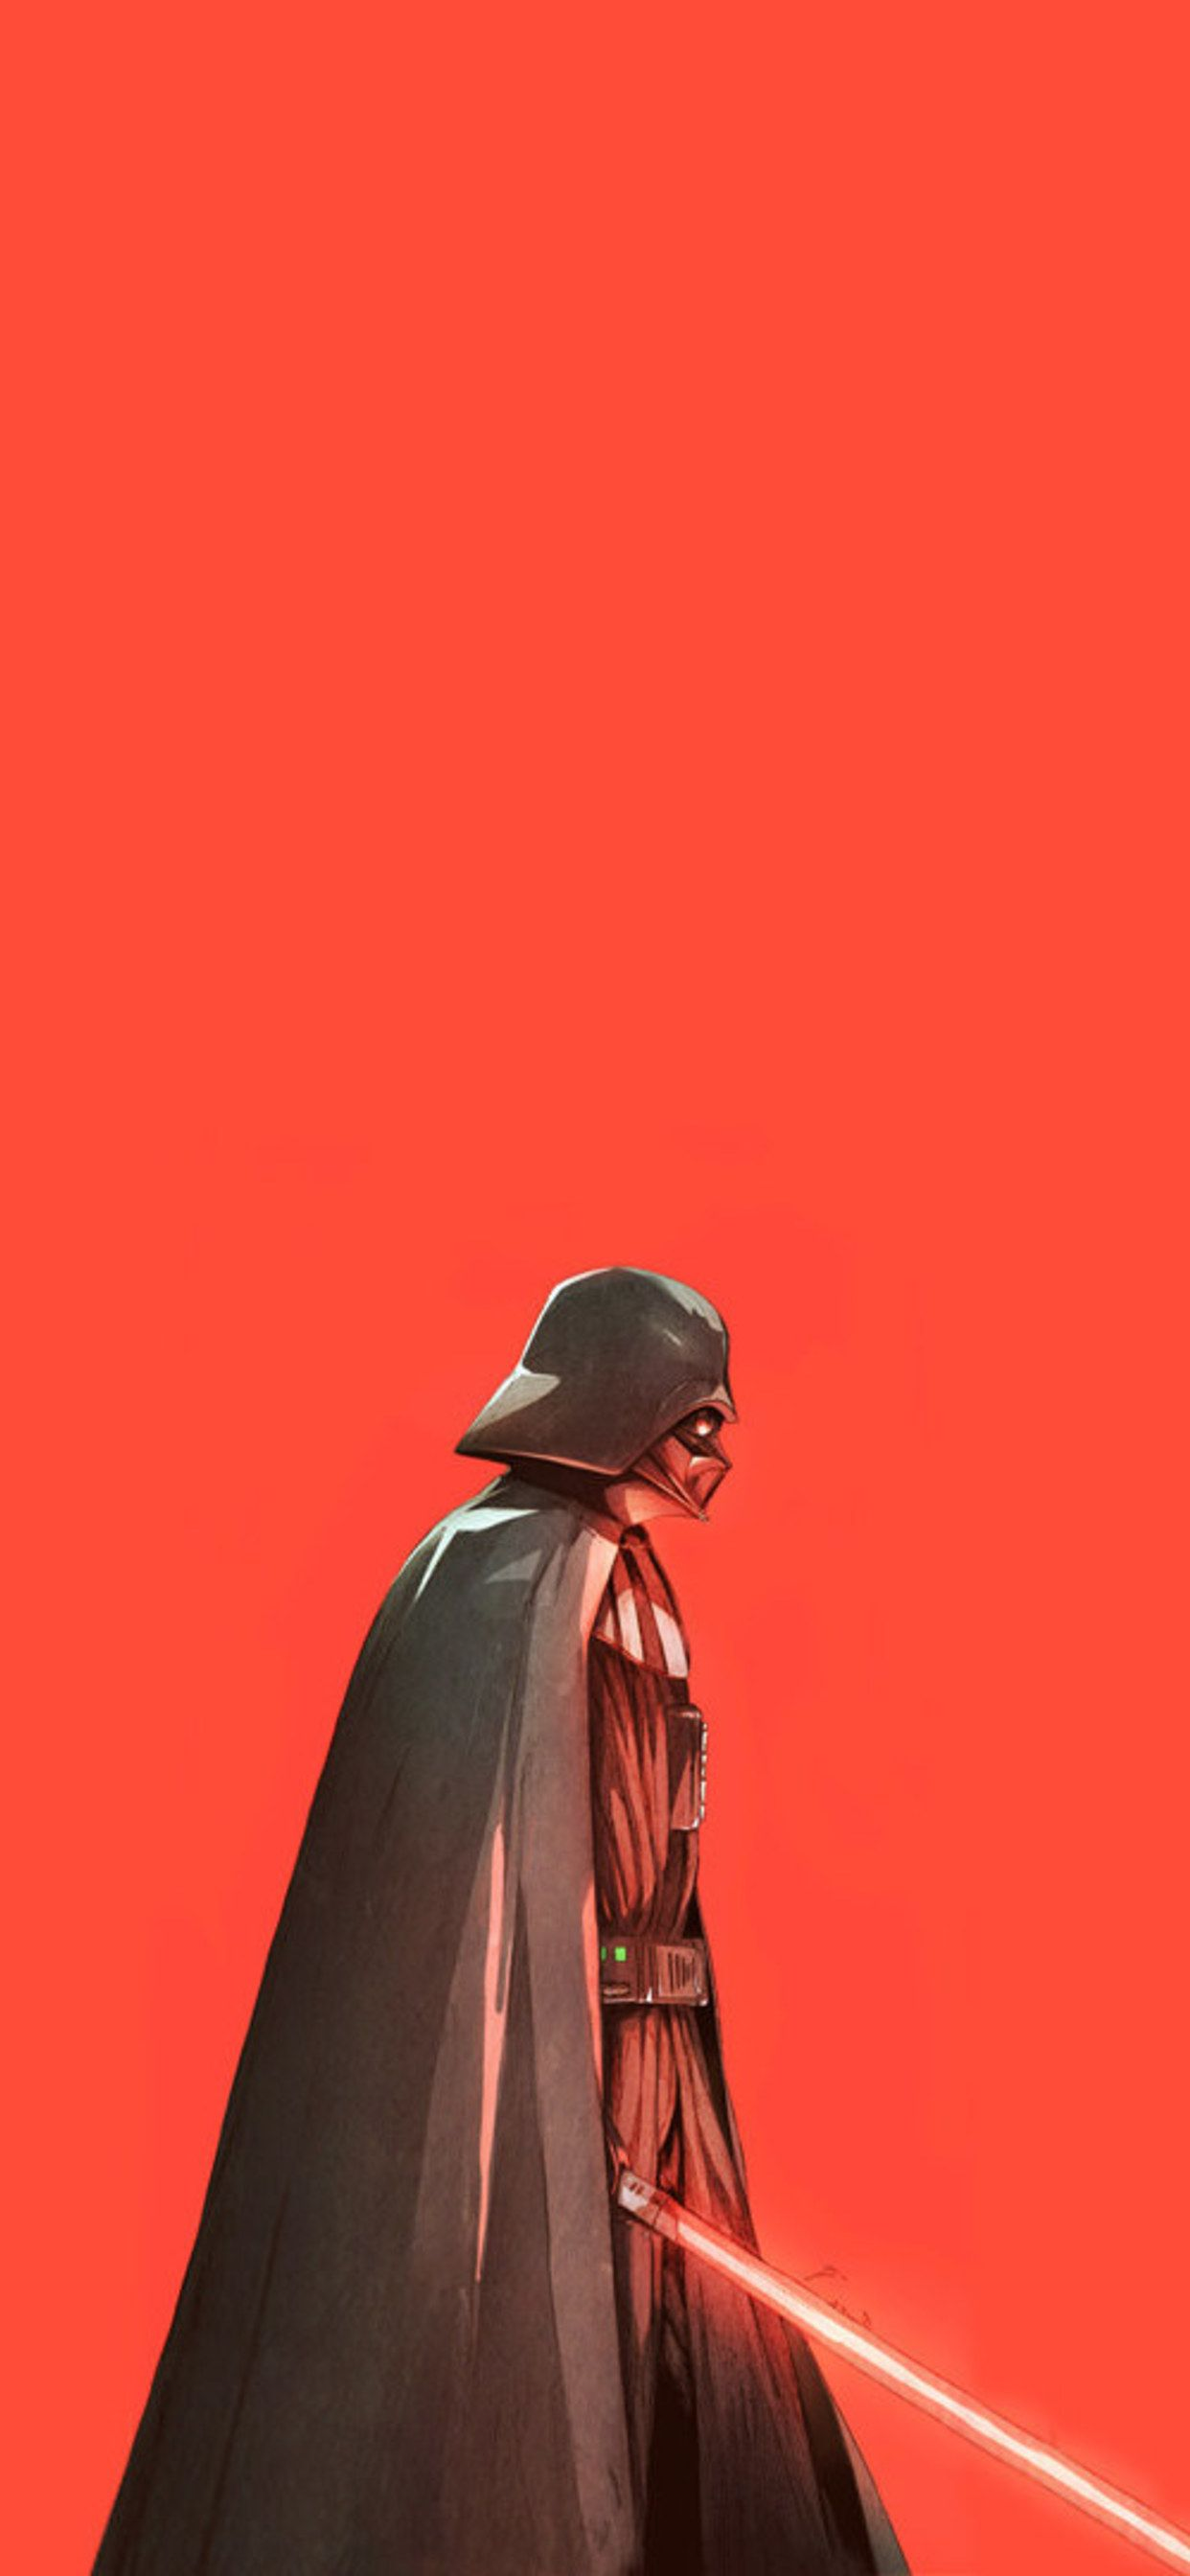 Darth Vader Iphone Xs Max Wallpaper 3d Wallpapers Star Wars Wallpaper Iphone Darth Vader Darth Vader Wallpaper Iphone